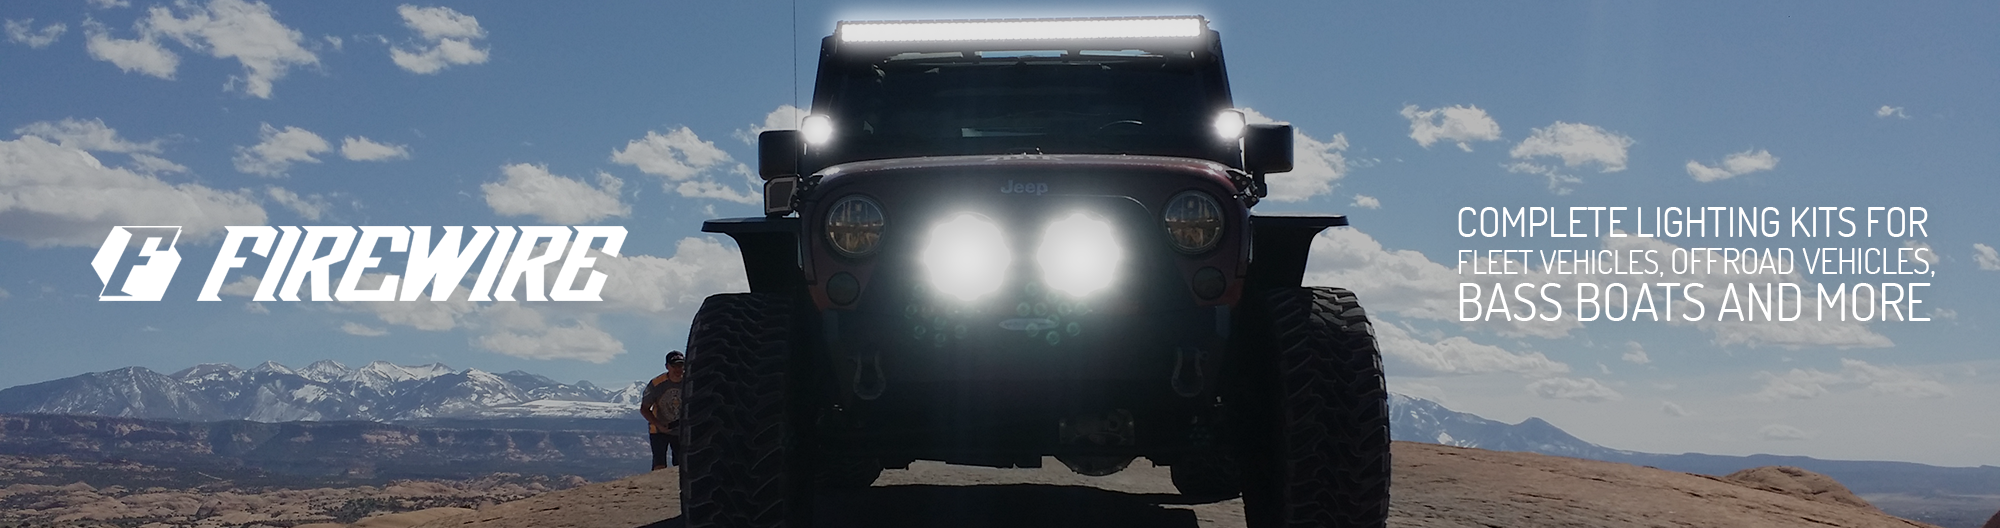 Firewire Leds Every Led For Application Complete Jeep Tj Windshield Lights Wiring Saftey Wire Strobe Lighting